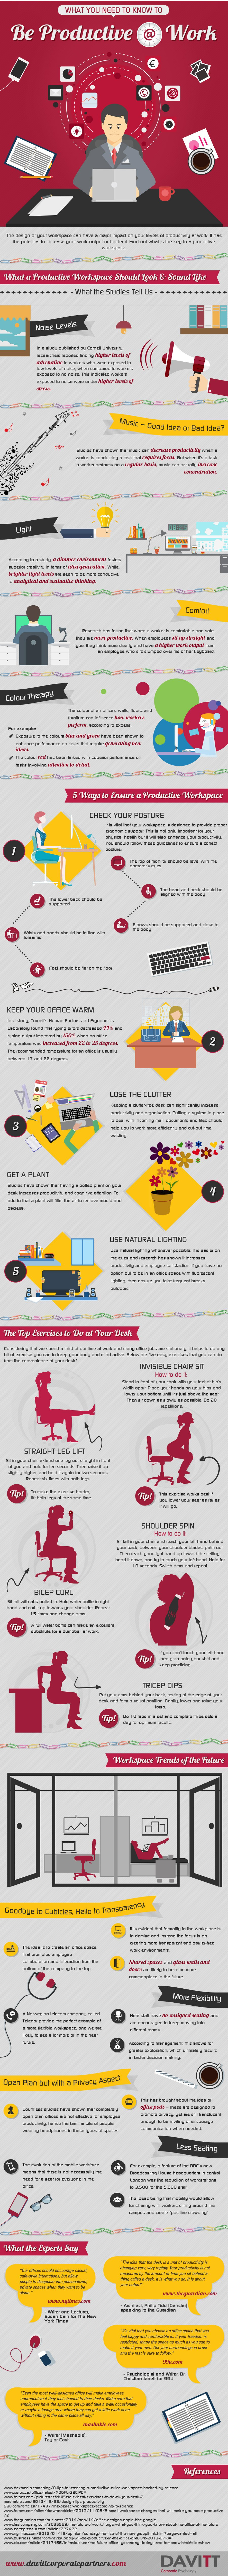 digital-marketing-infographics-17-be-more-productive.jpg